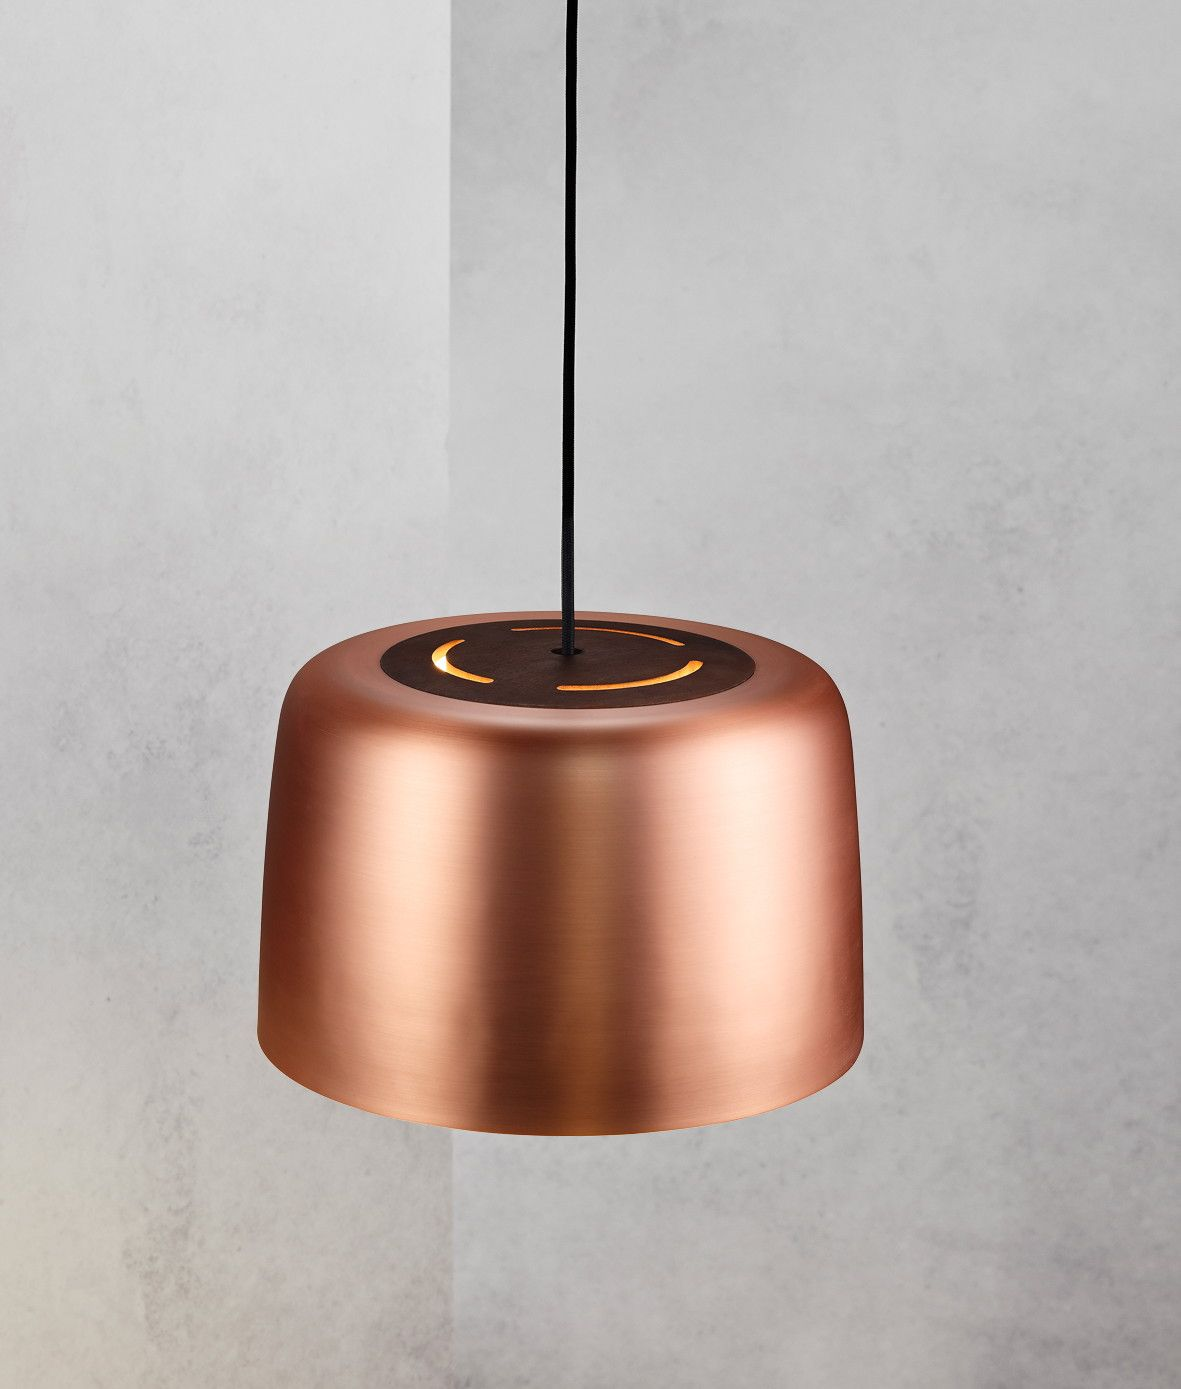 Danish lighting copper pendant light helga wonen pinterest danish lighting copper pendant light helga mozeypictures Image collections